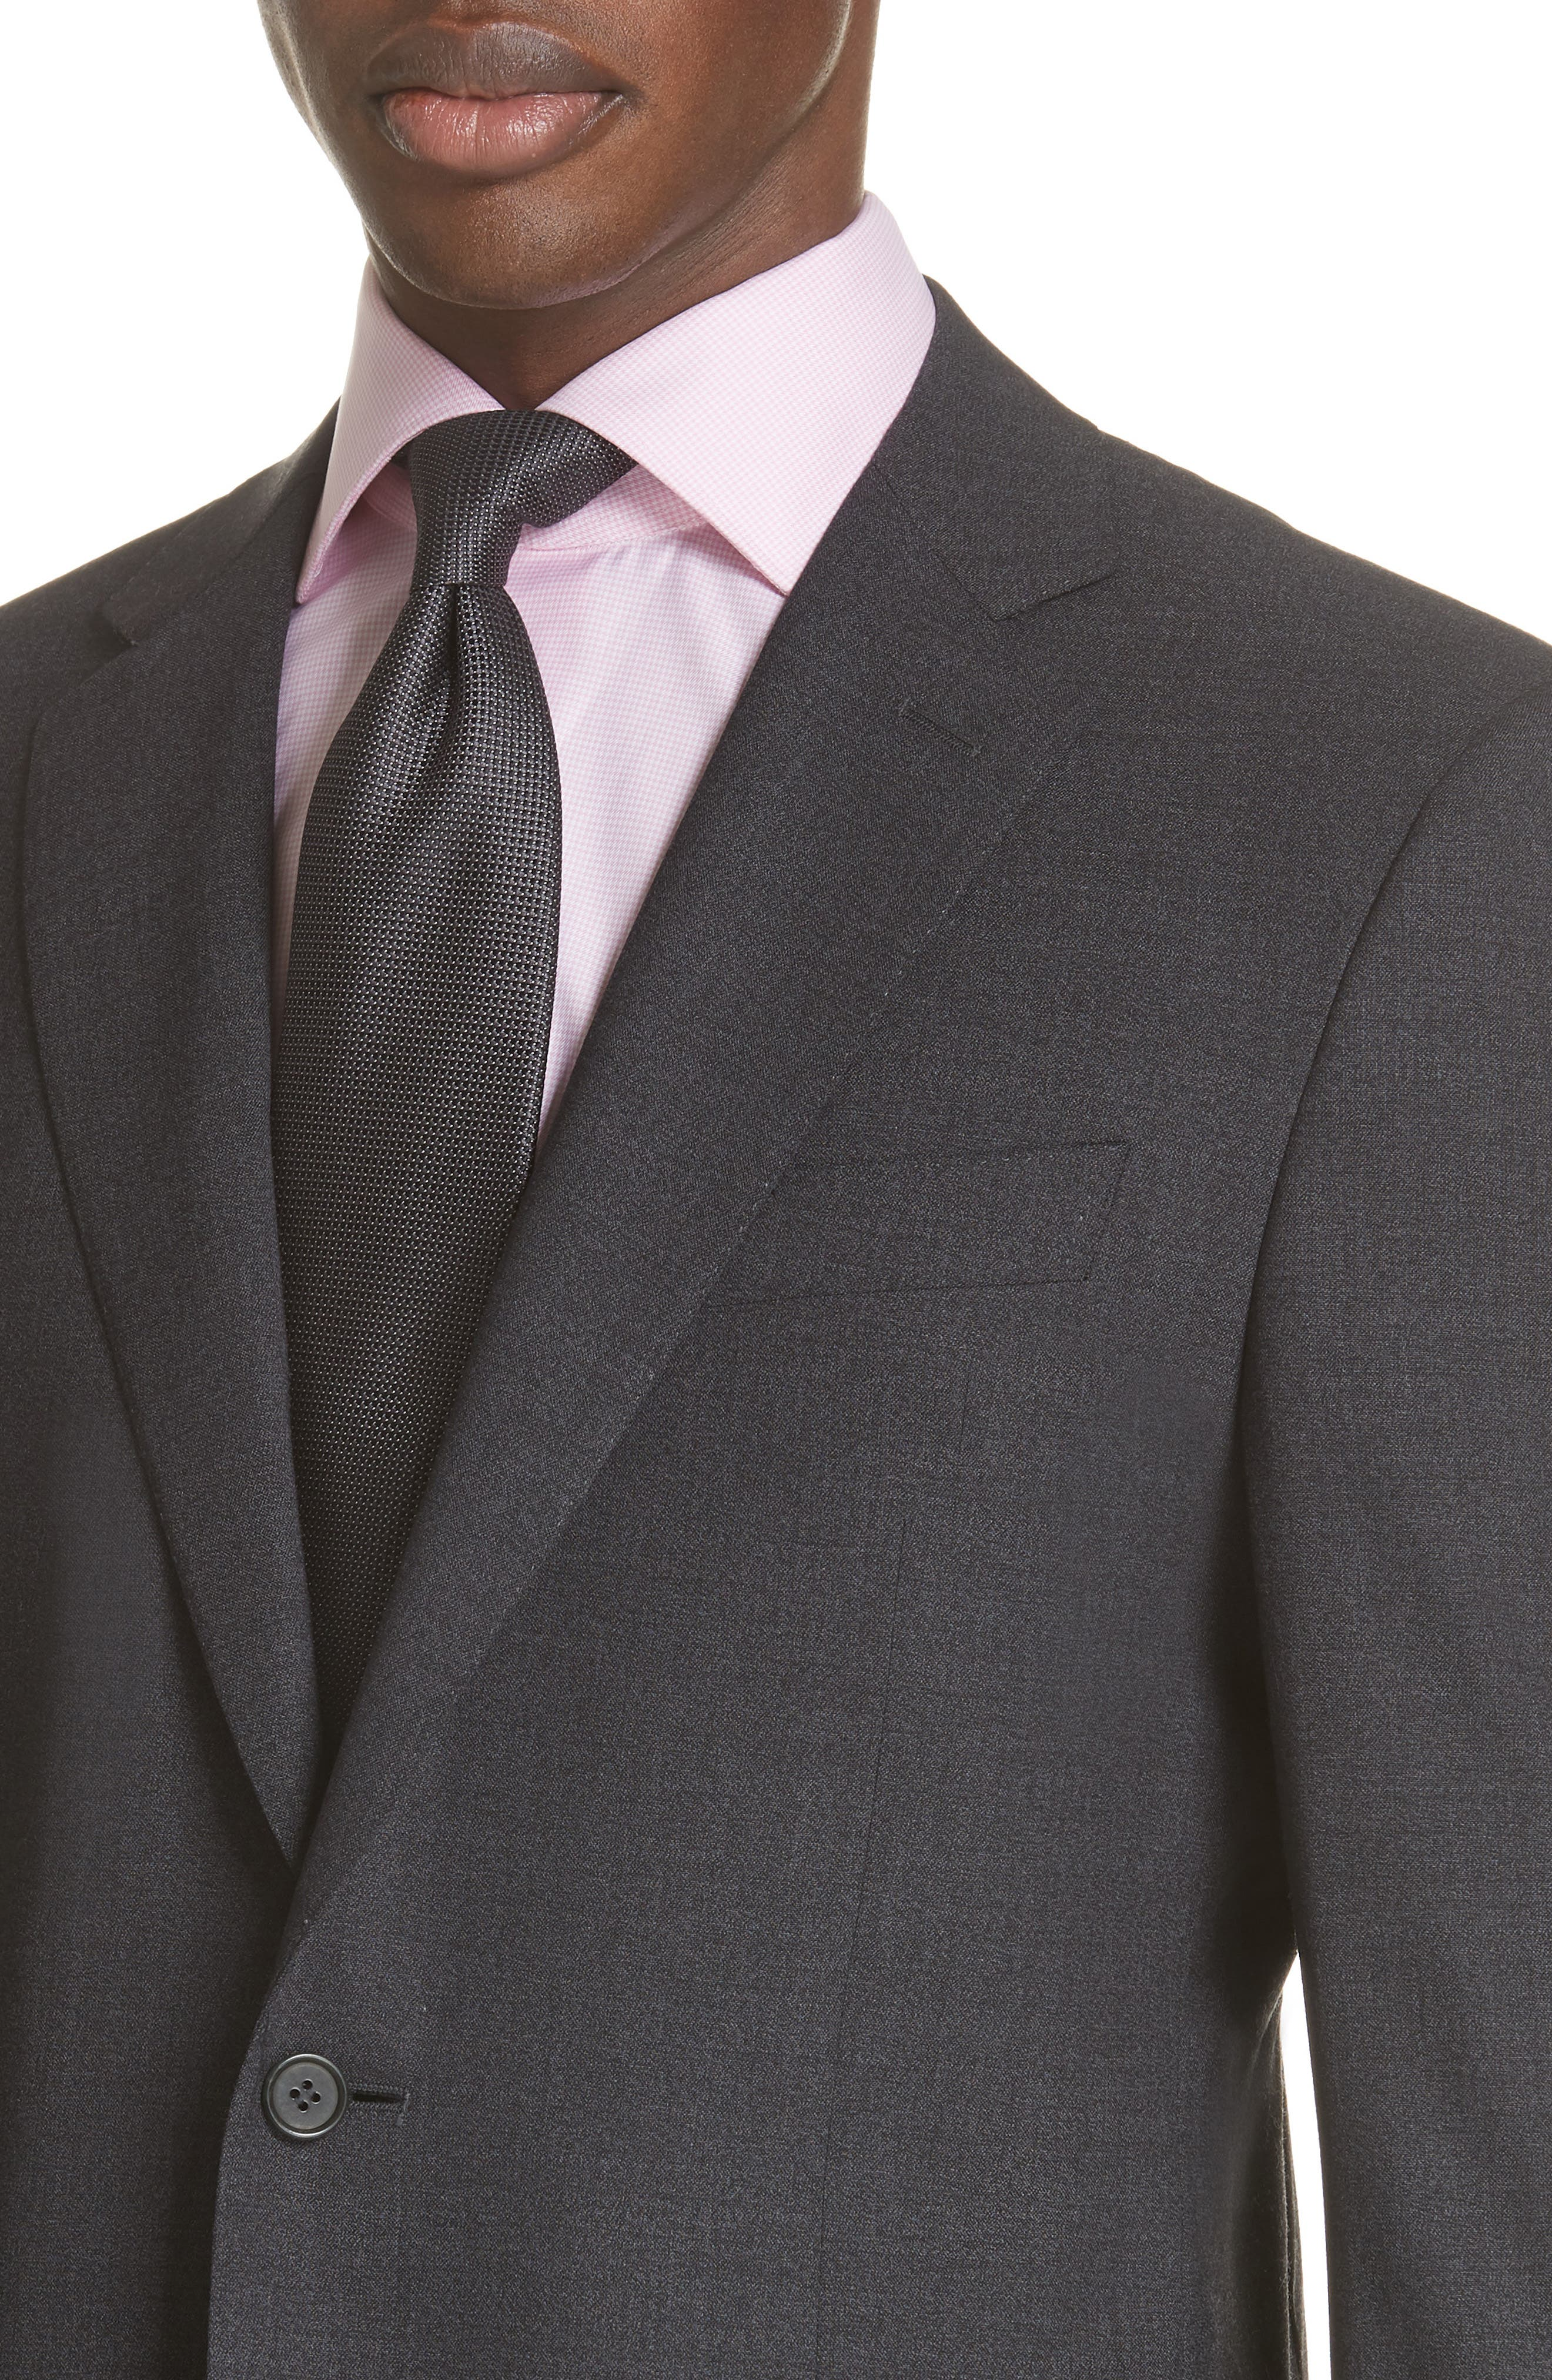 Classic Fit Stretch Solid Wool Suit,                             Alternate thumbnail 4, color,                             CHARCOAL